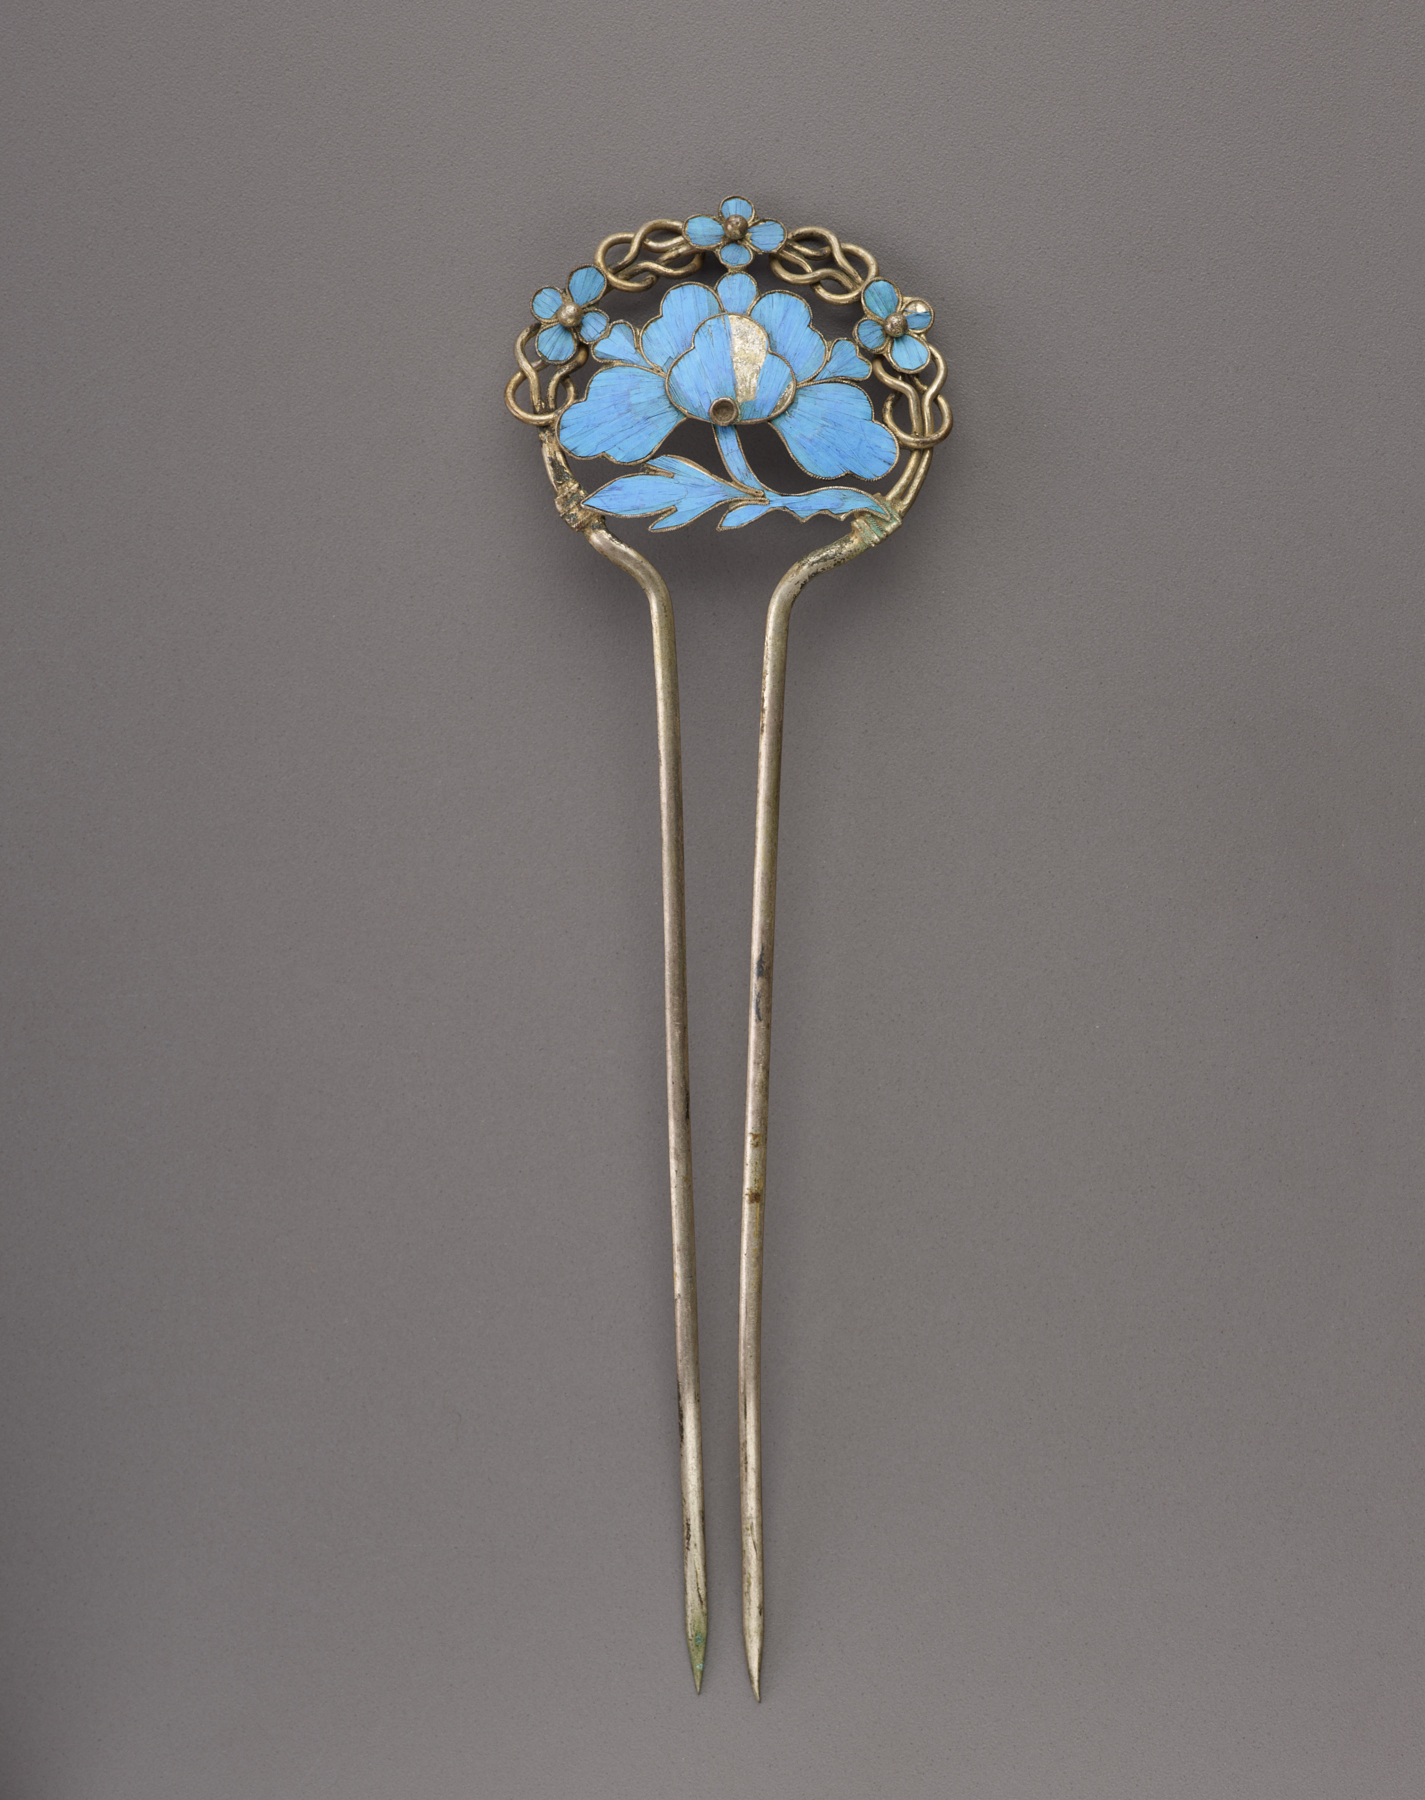 Double-prong kingfisher-feather hairpin with floral motif